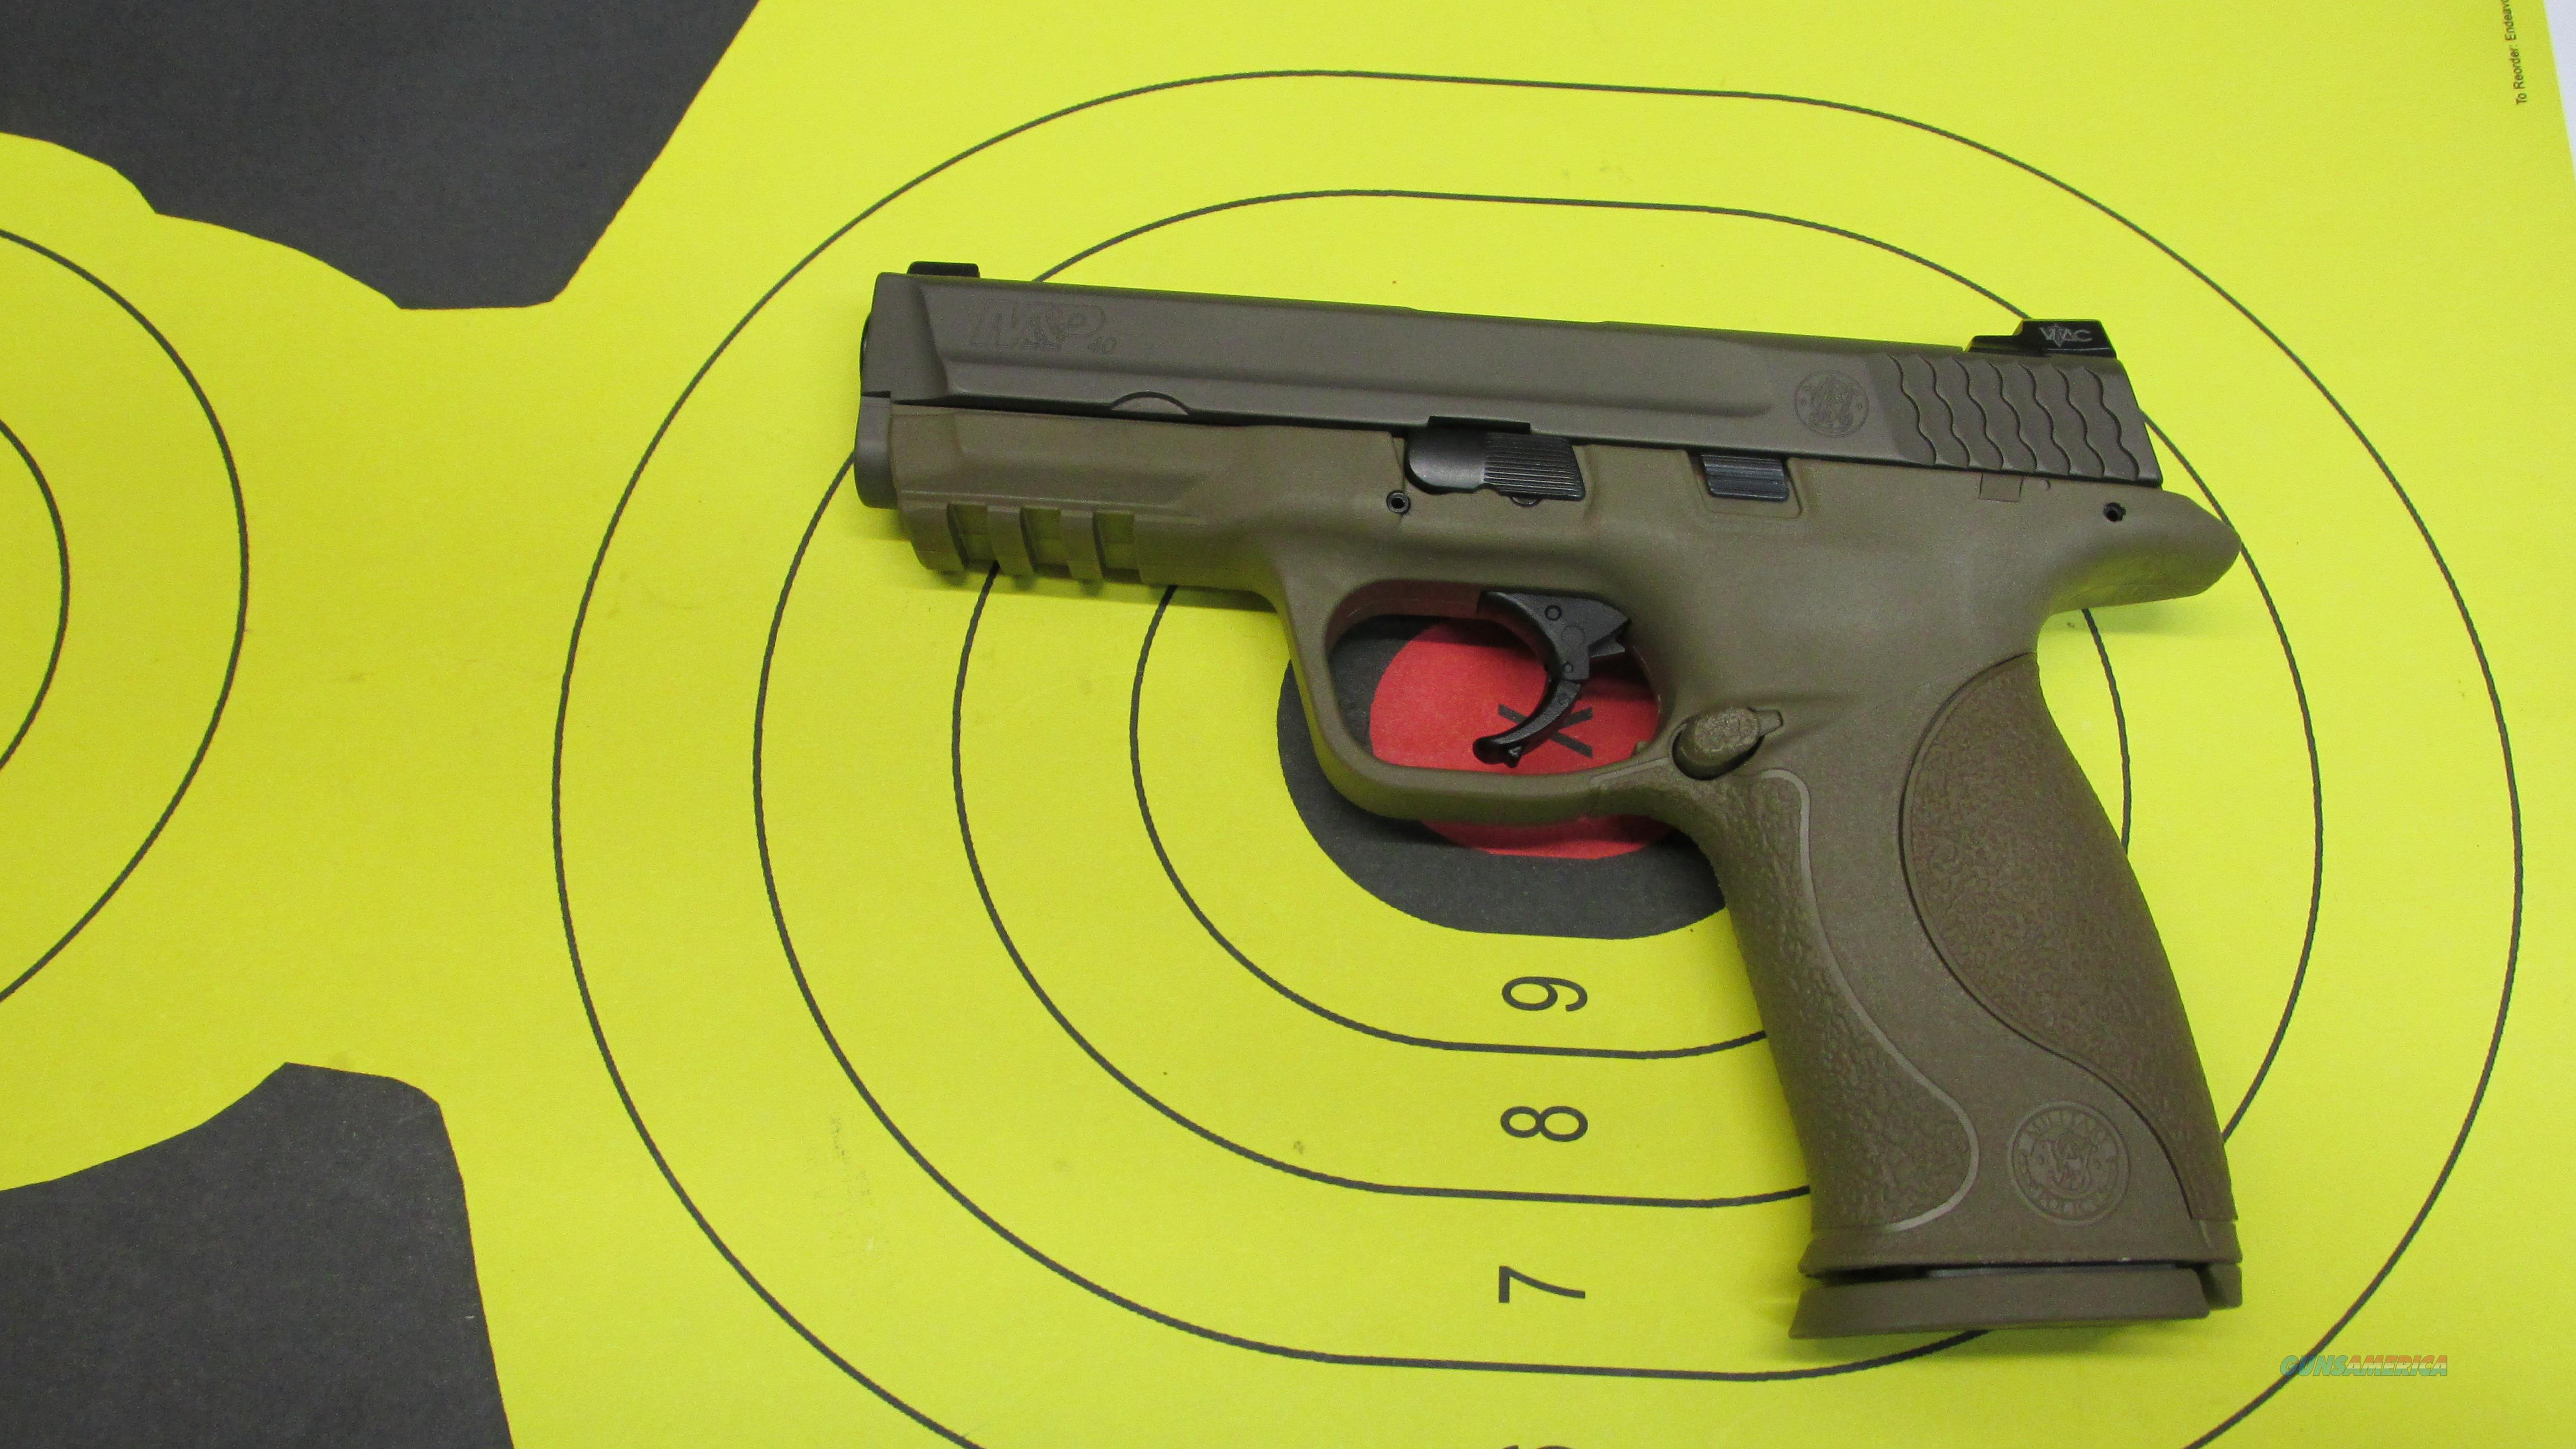 "SMITH & WESSON M&P40 VTAC, FULL FDE .40 S&W PISTOL, 2 14 ROUND MAGAZINES, 4.25"" BARREL  Guns > Pistols > Smith & Wesson Pistols - Autos > Polymer Frame"